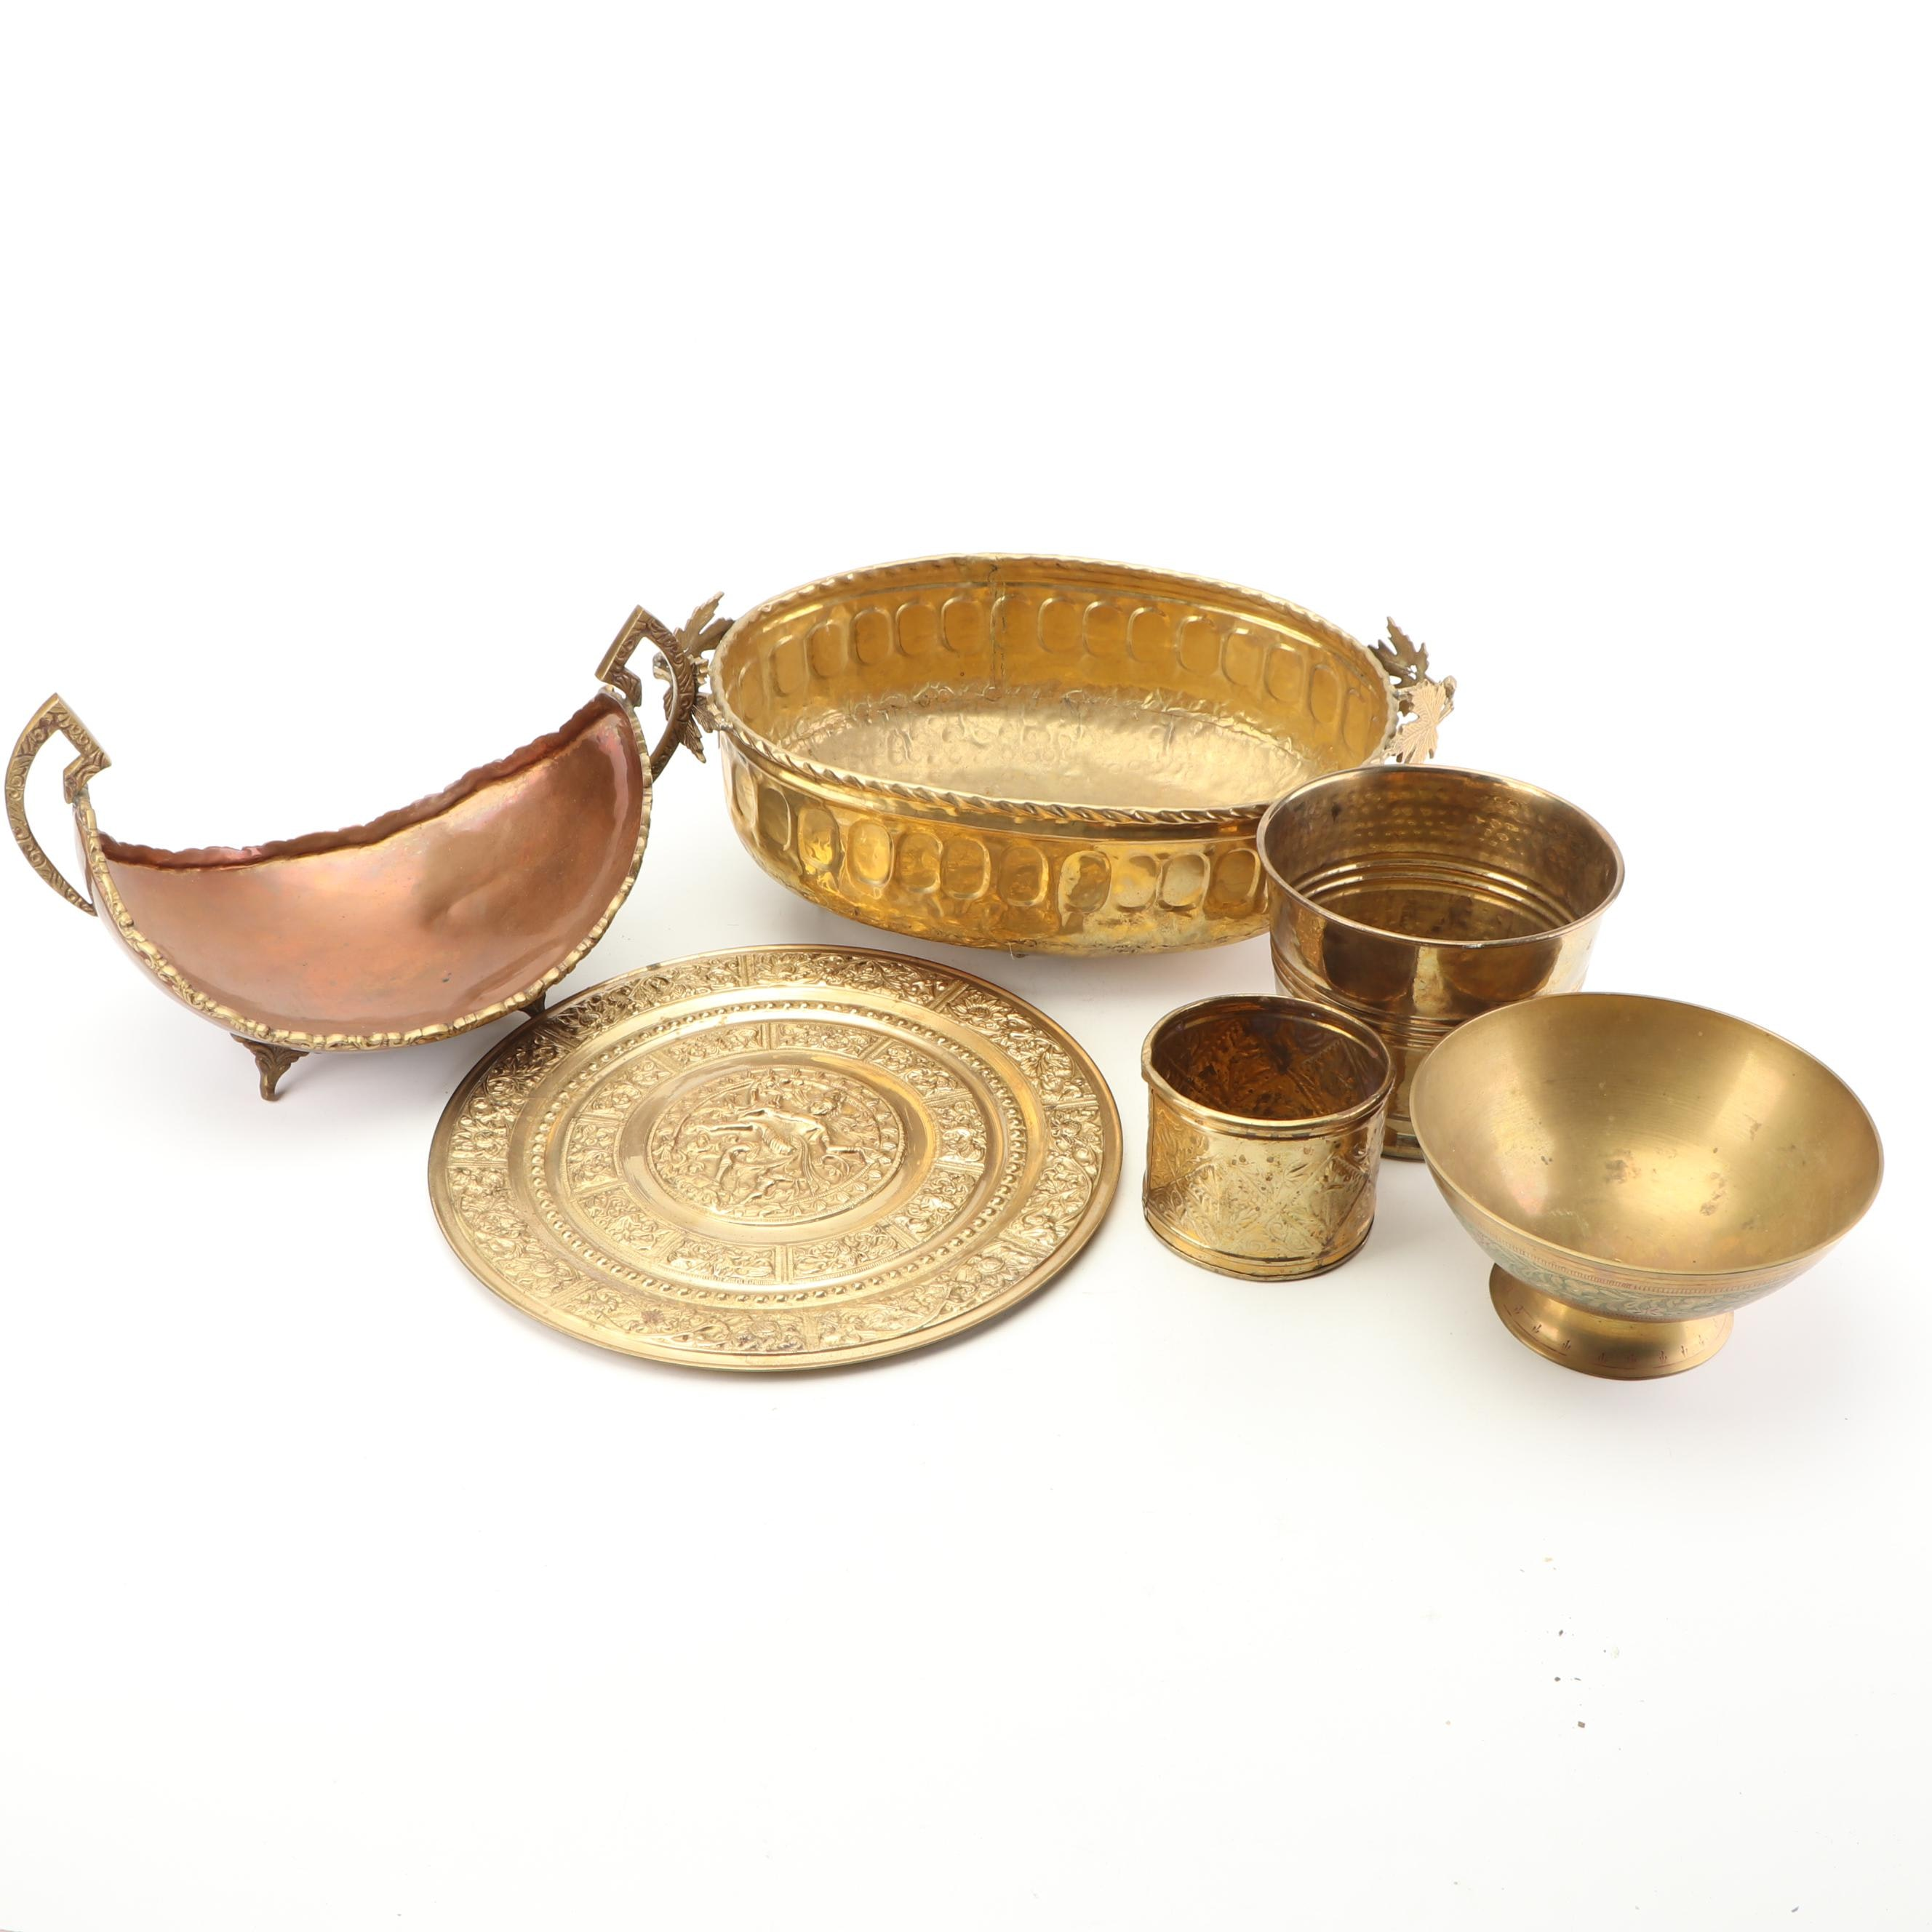 A. Lara Brass and Copper Bowl with Repoussé Planters